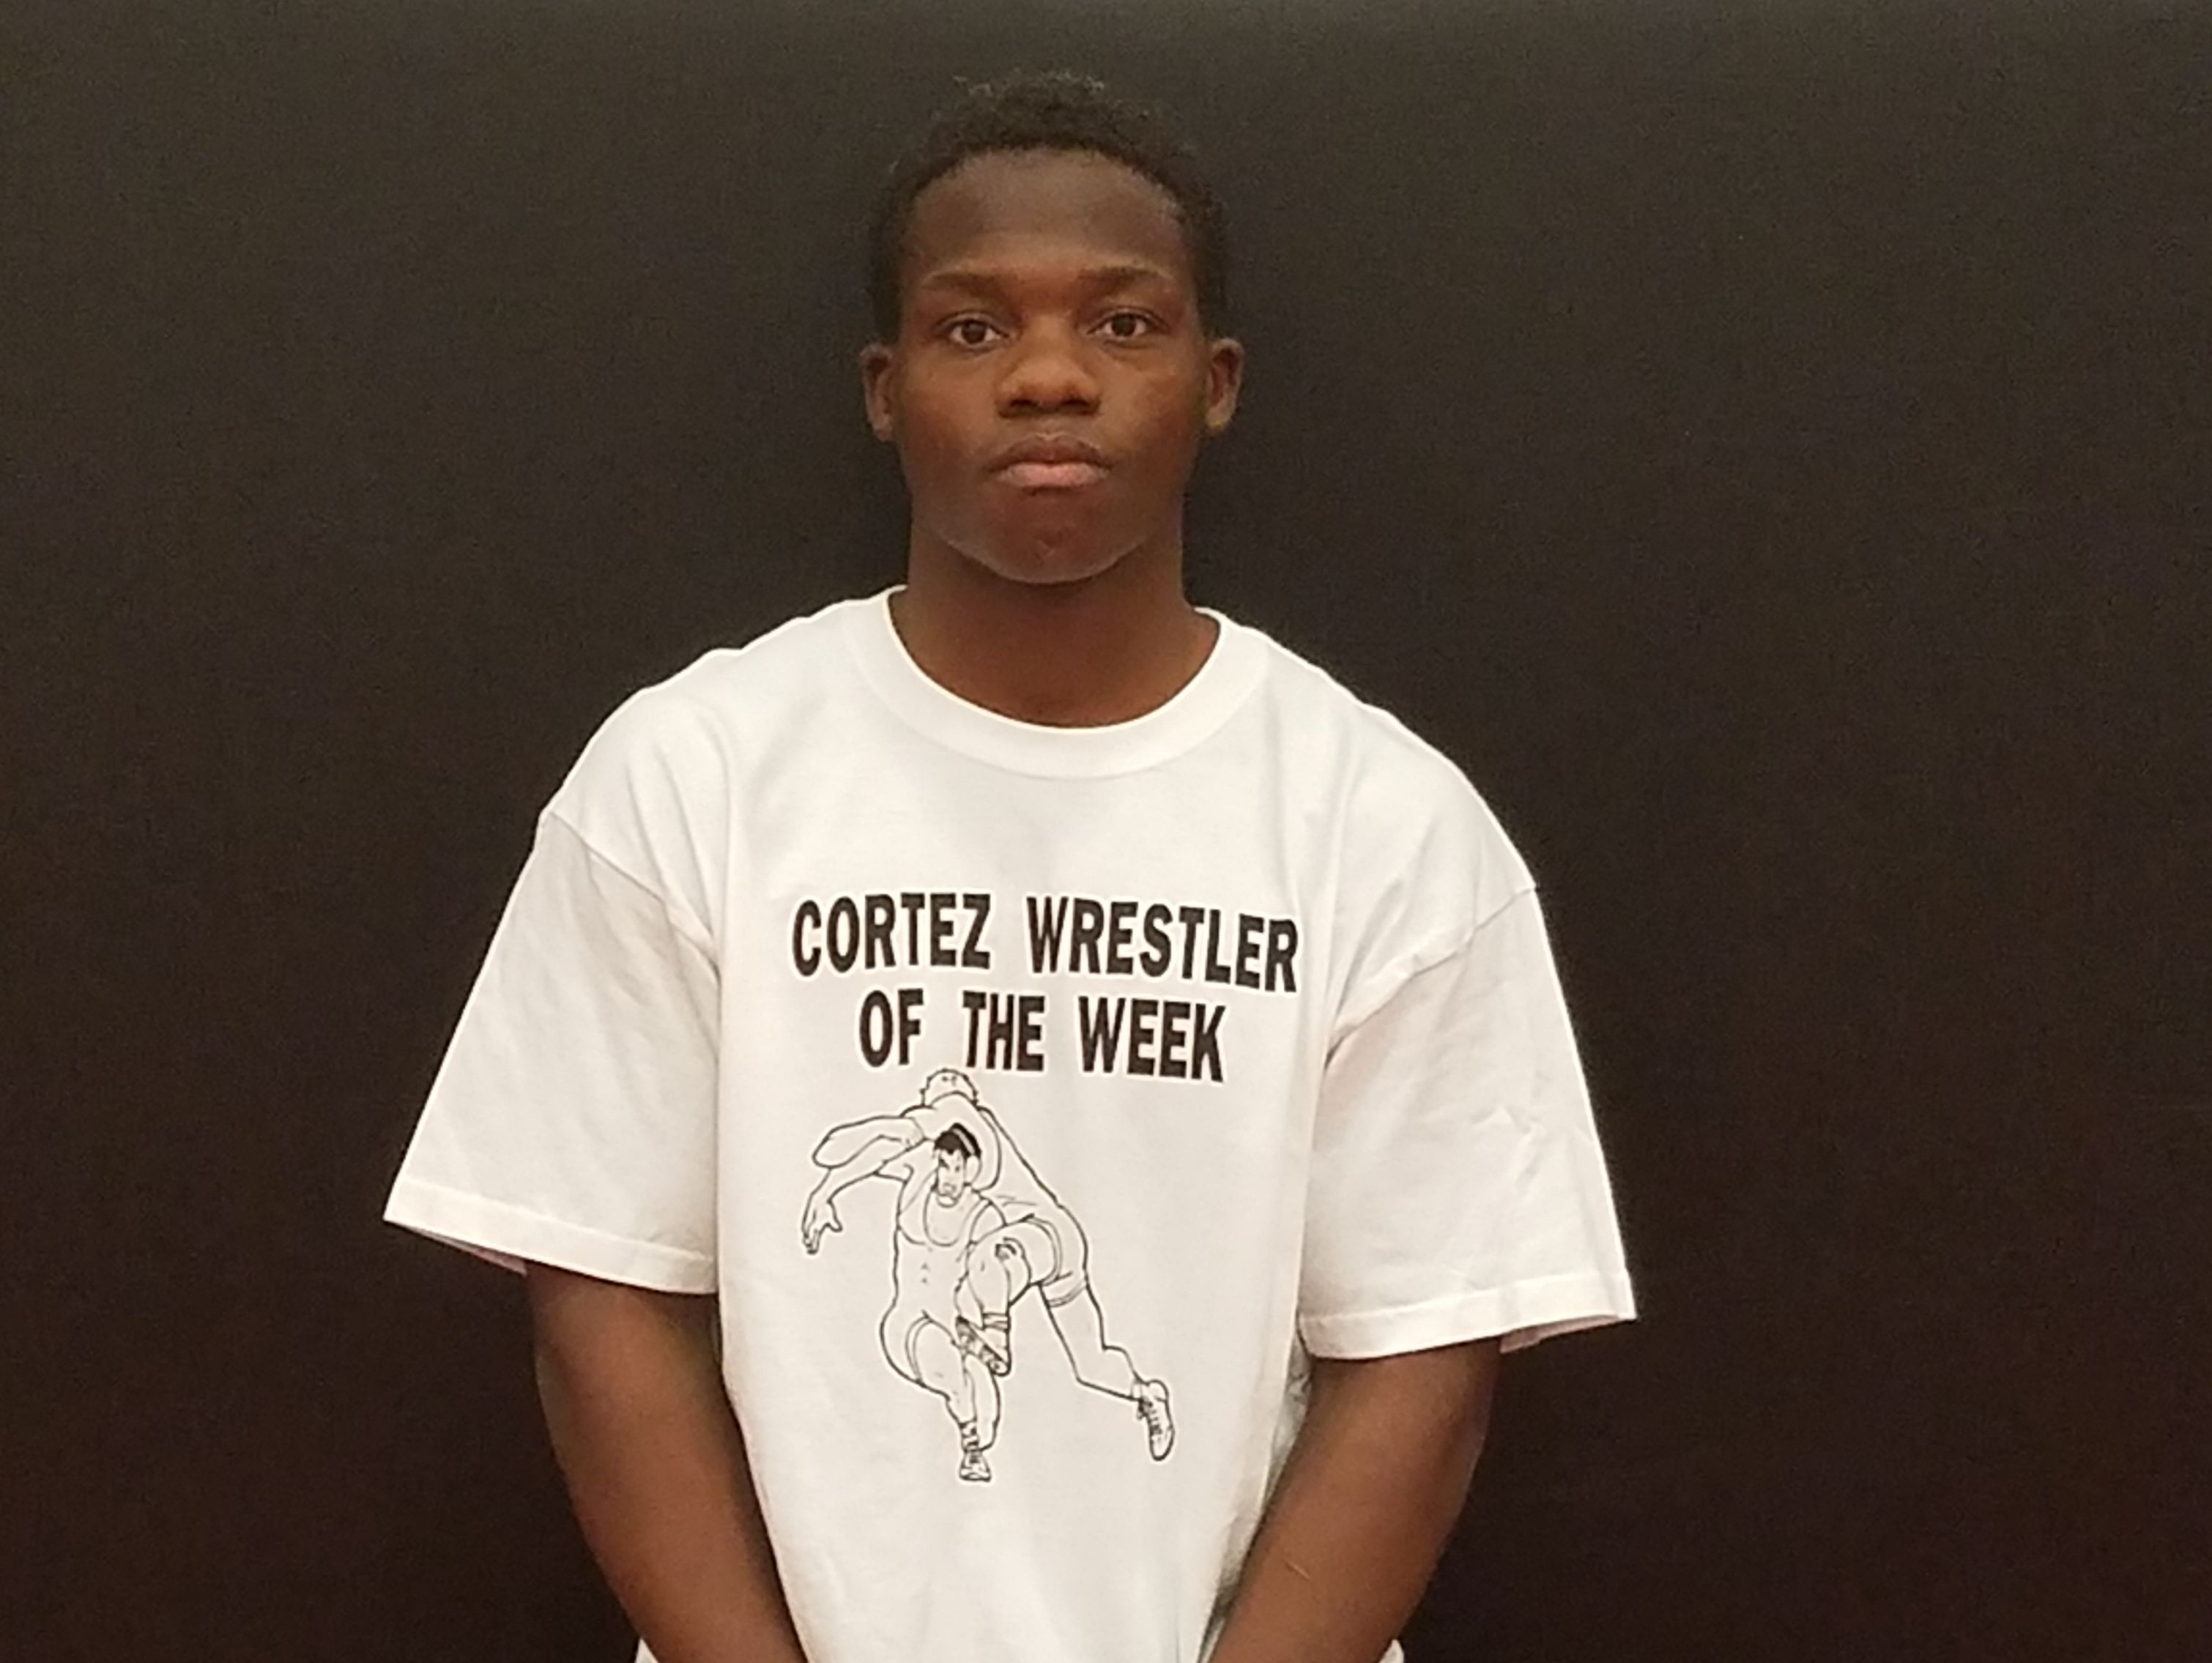 Jerry Sohn, from Phoenix Cortez, is the azcentral.com Sports Awards Academic All-Star of the Week for Feb. 2-9.